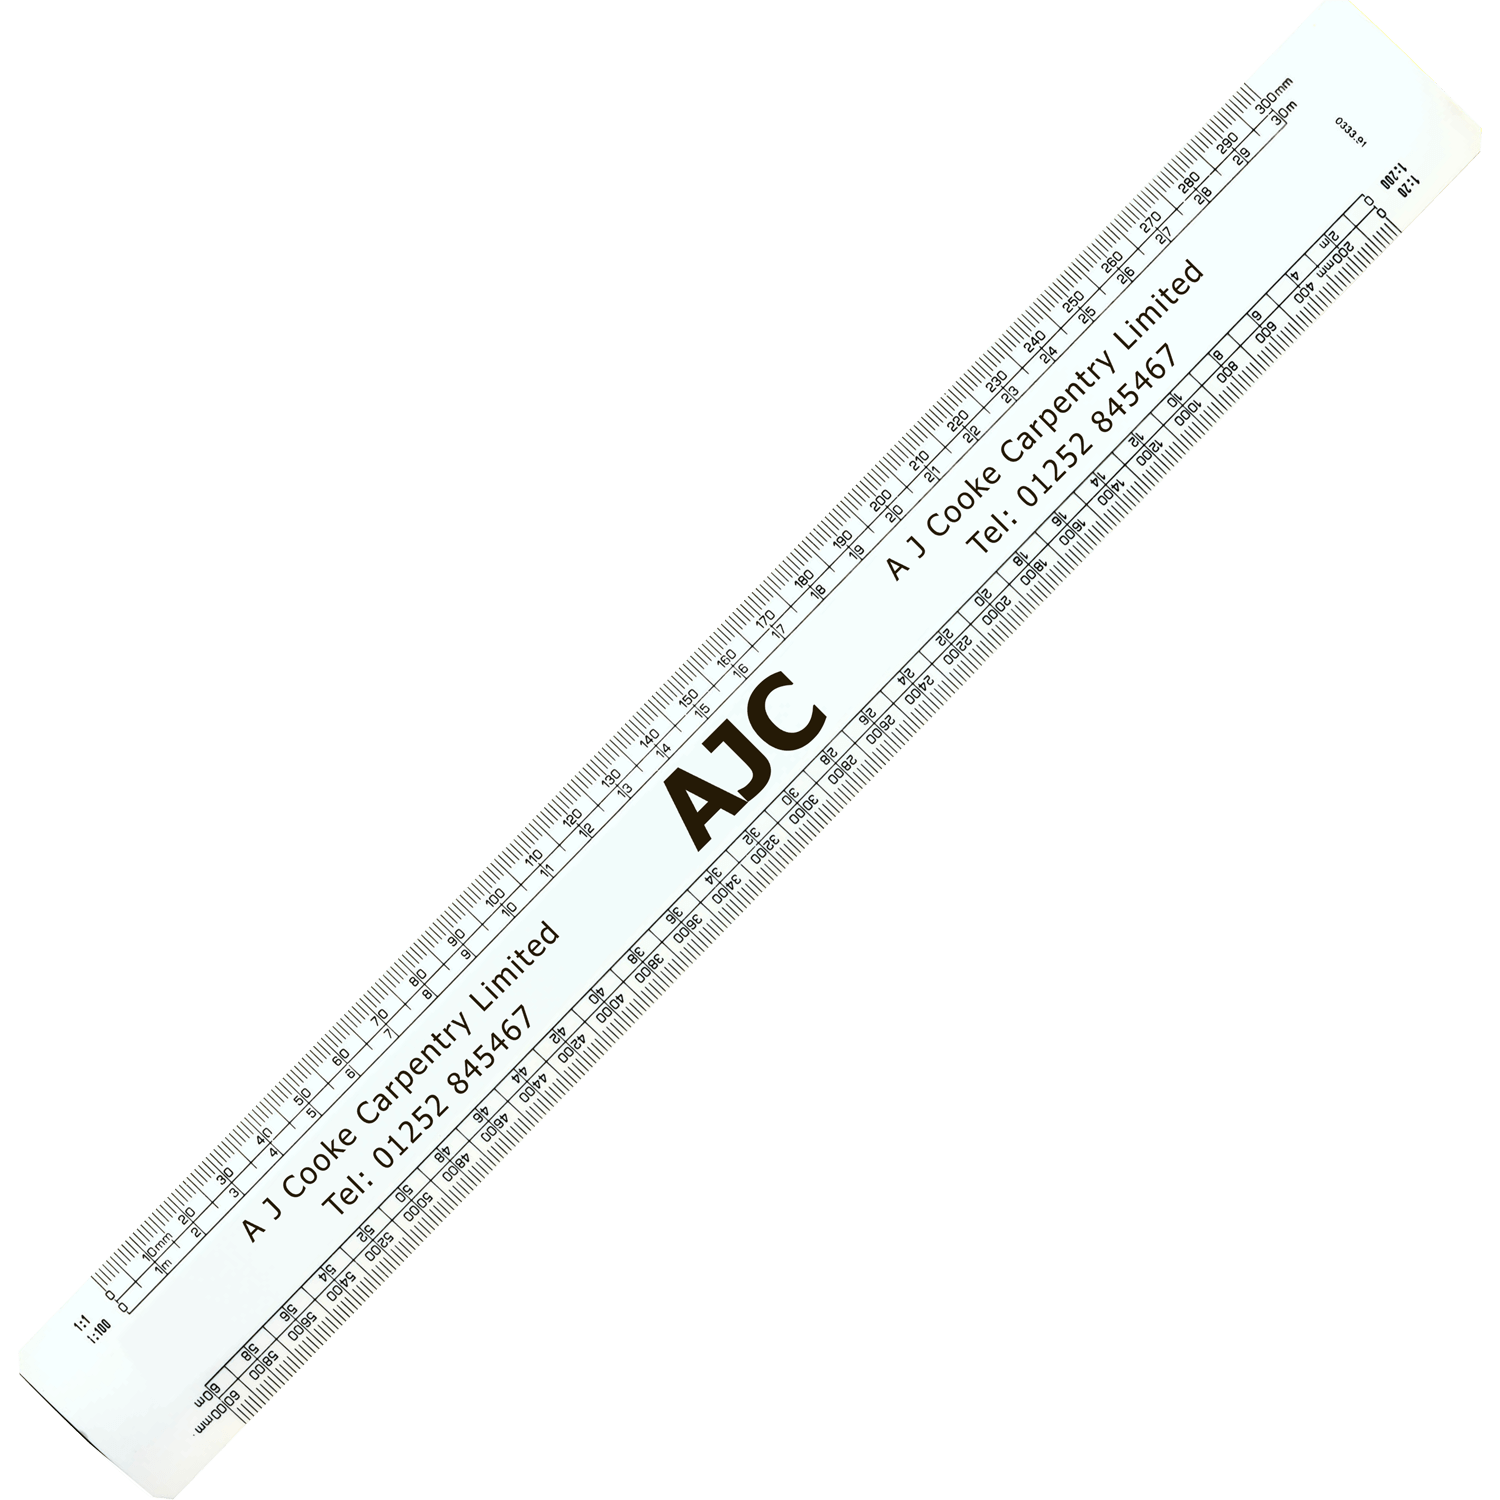 300mm Oval Scale Rule